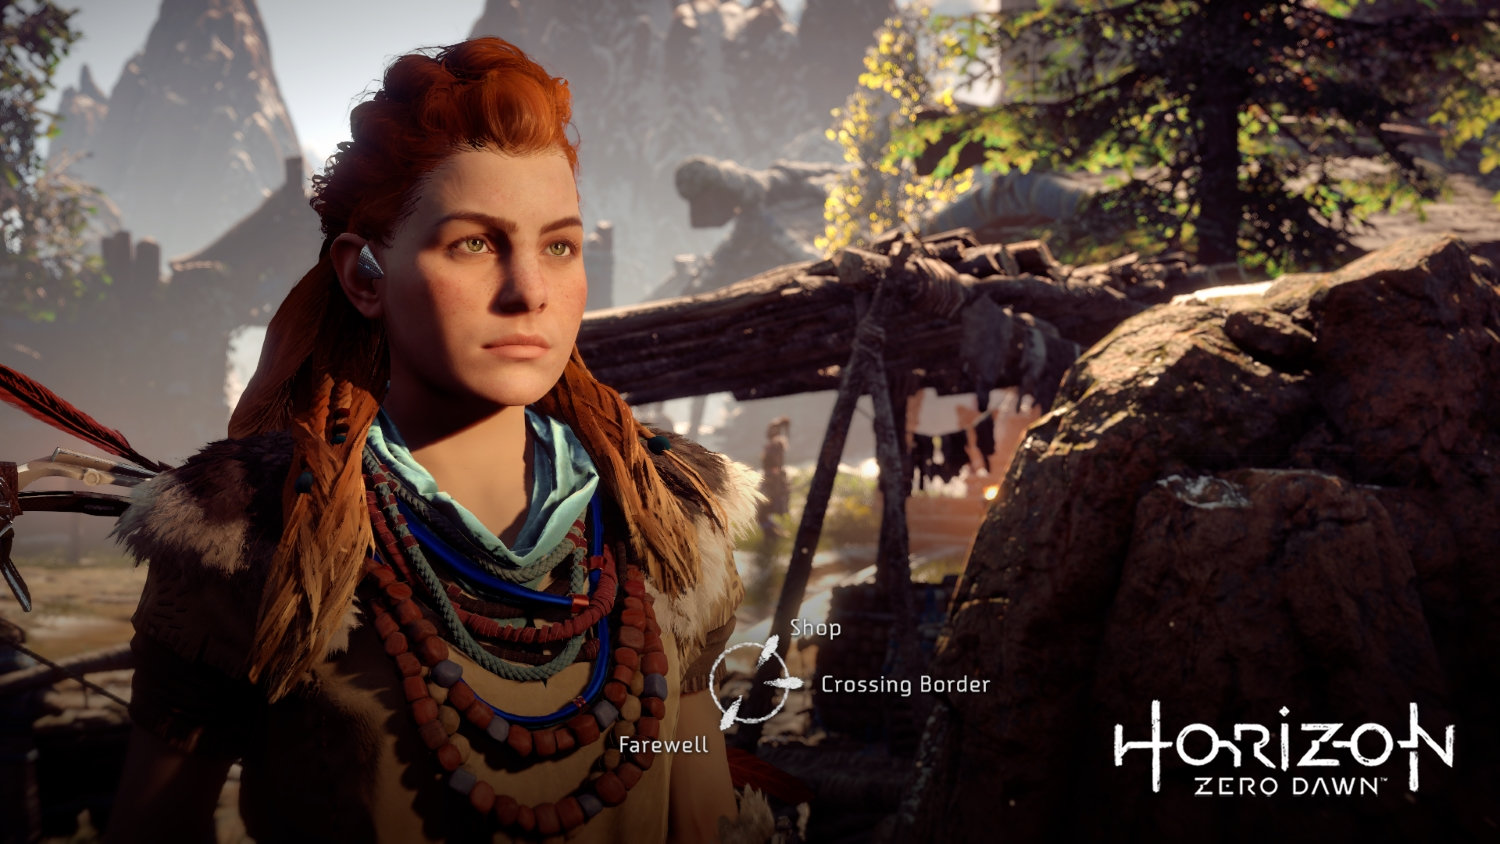 Games Inbox: Horizon Zero Dawn 2nd anniversary, return of Kyle Katarn, and Pokémon Sword/Shield